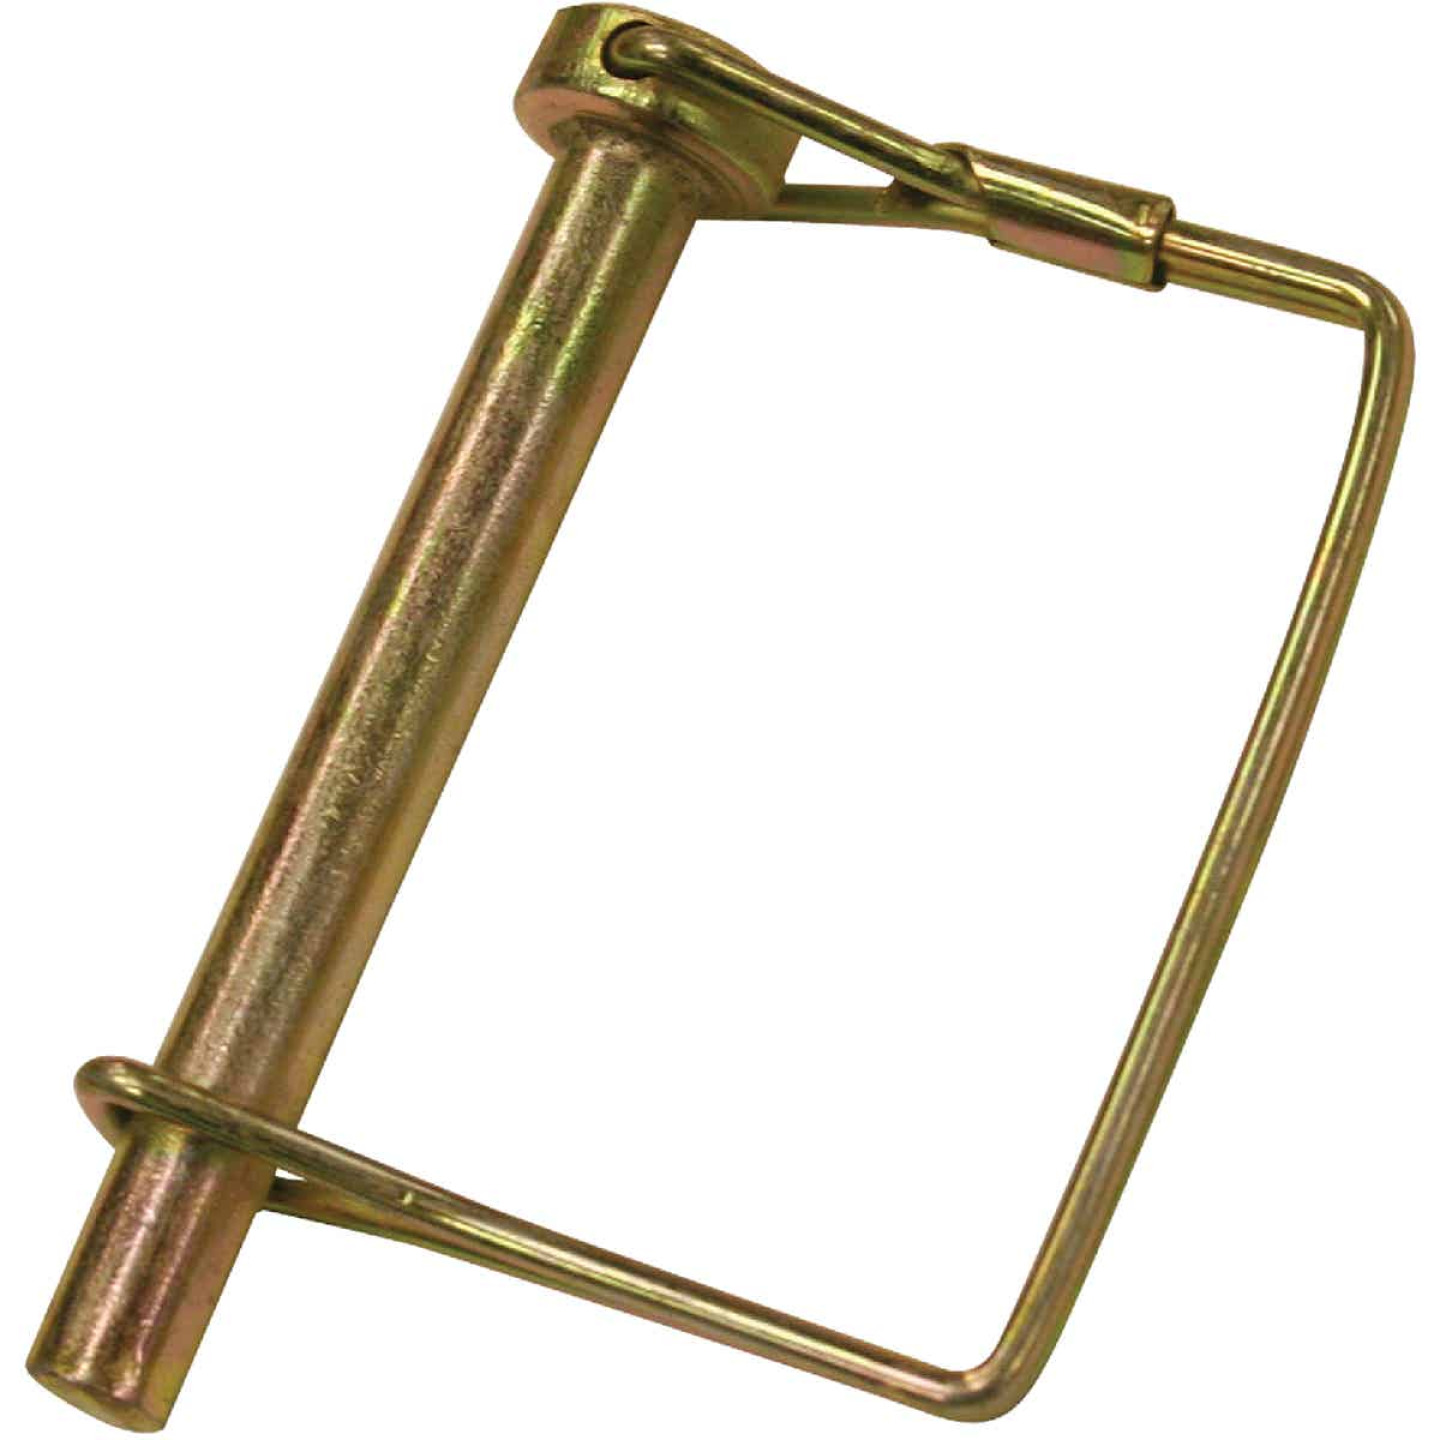 Speeco 5/16 In. x 2-1/4 In. Square Loop Lock Pin Image 1